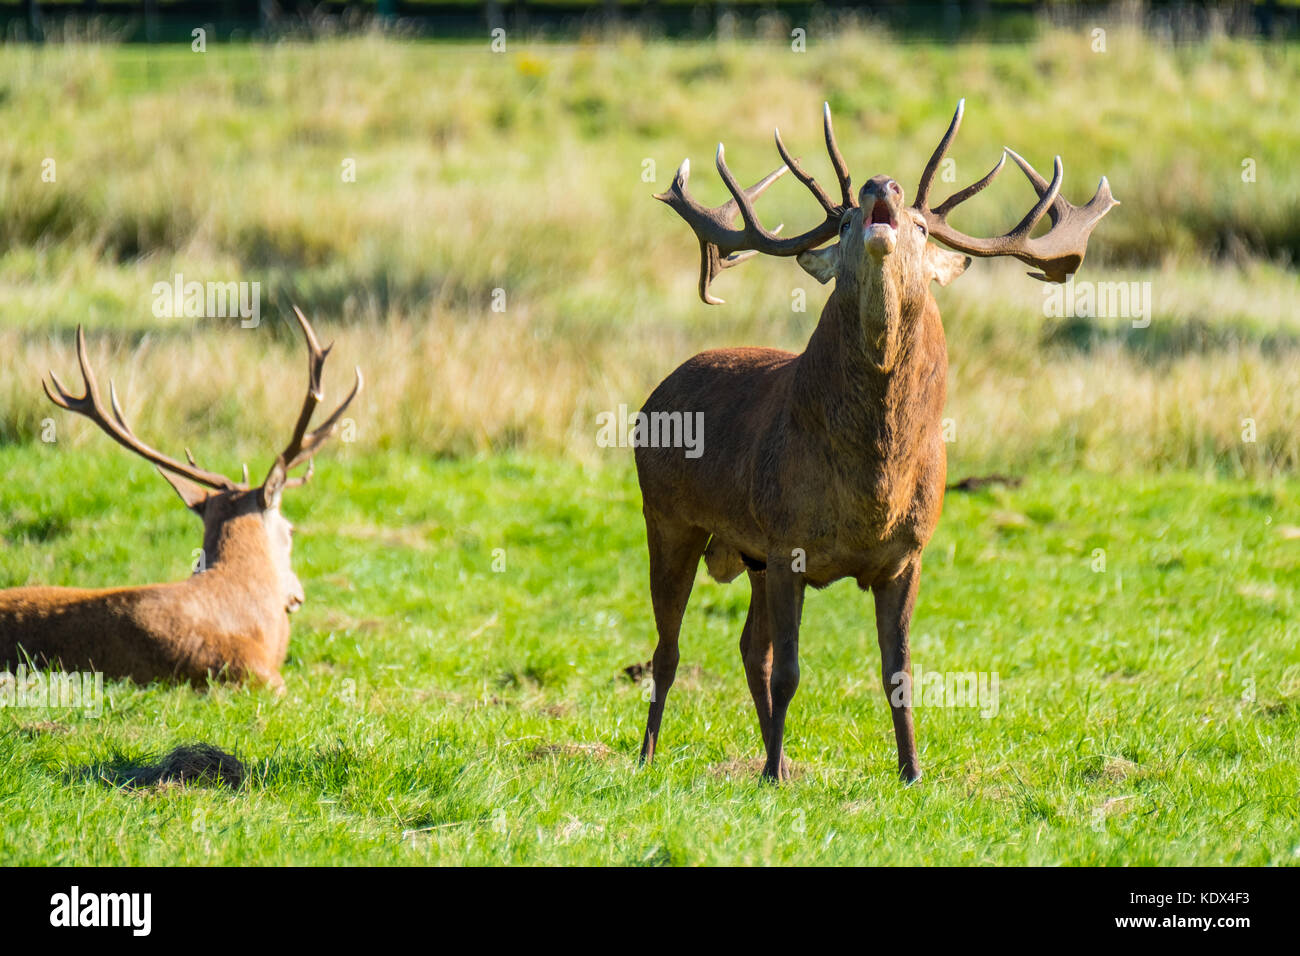 A Red Stag Shouting During Rutting Season - Stock Image